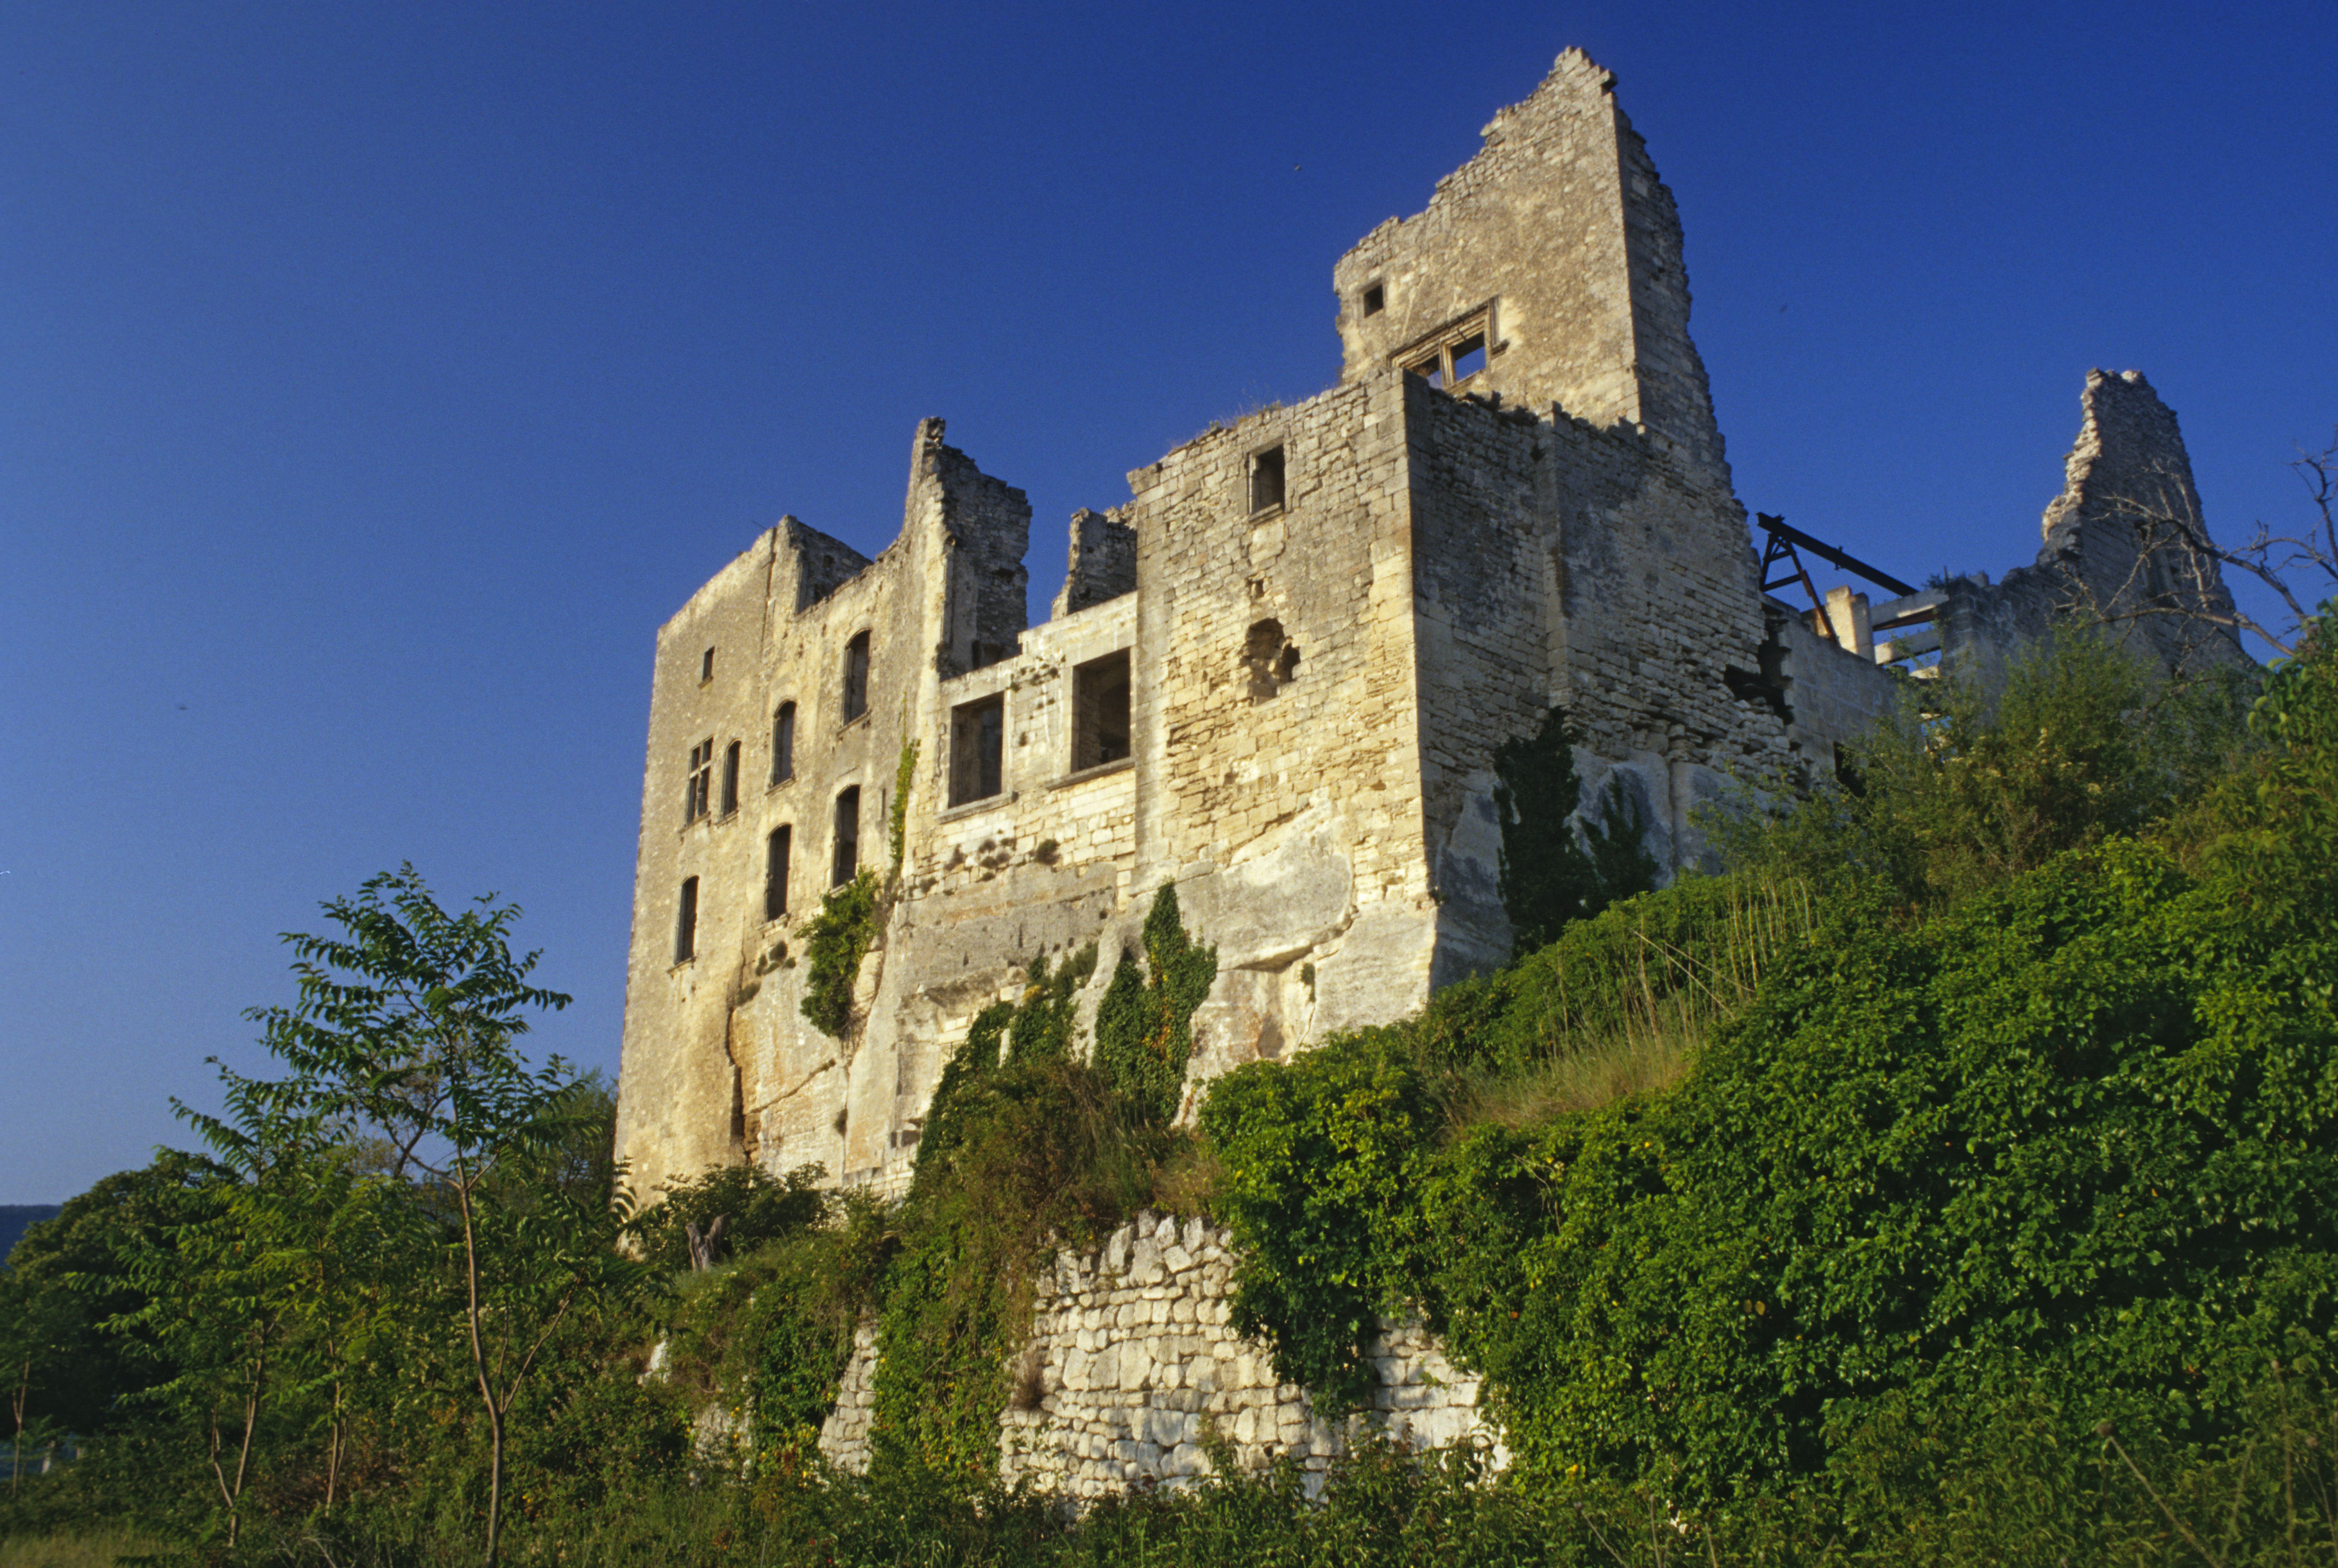 Crumbling exterior of Marquis of Sade castle in Lacoste, Luberon, Vaucluse, France